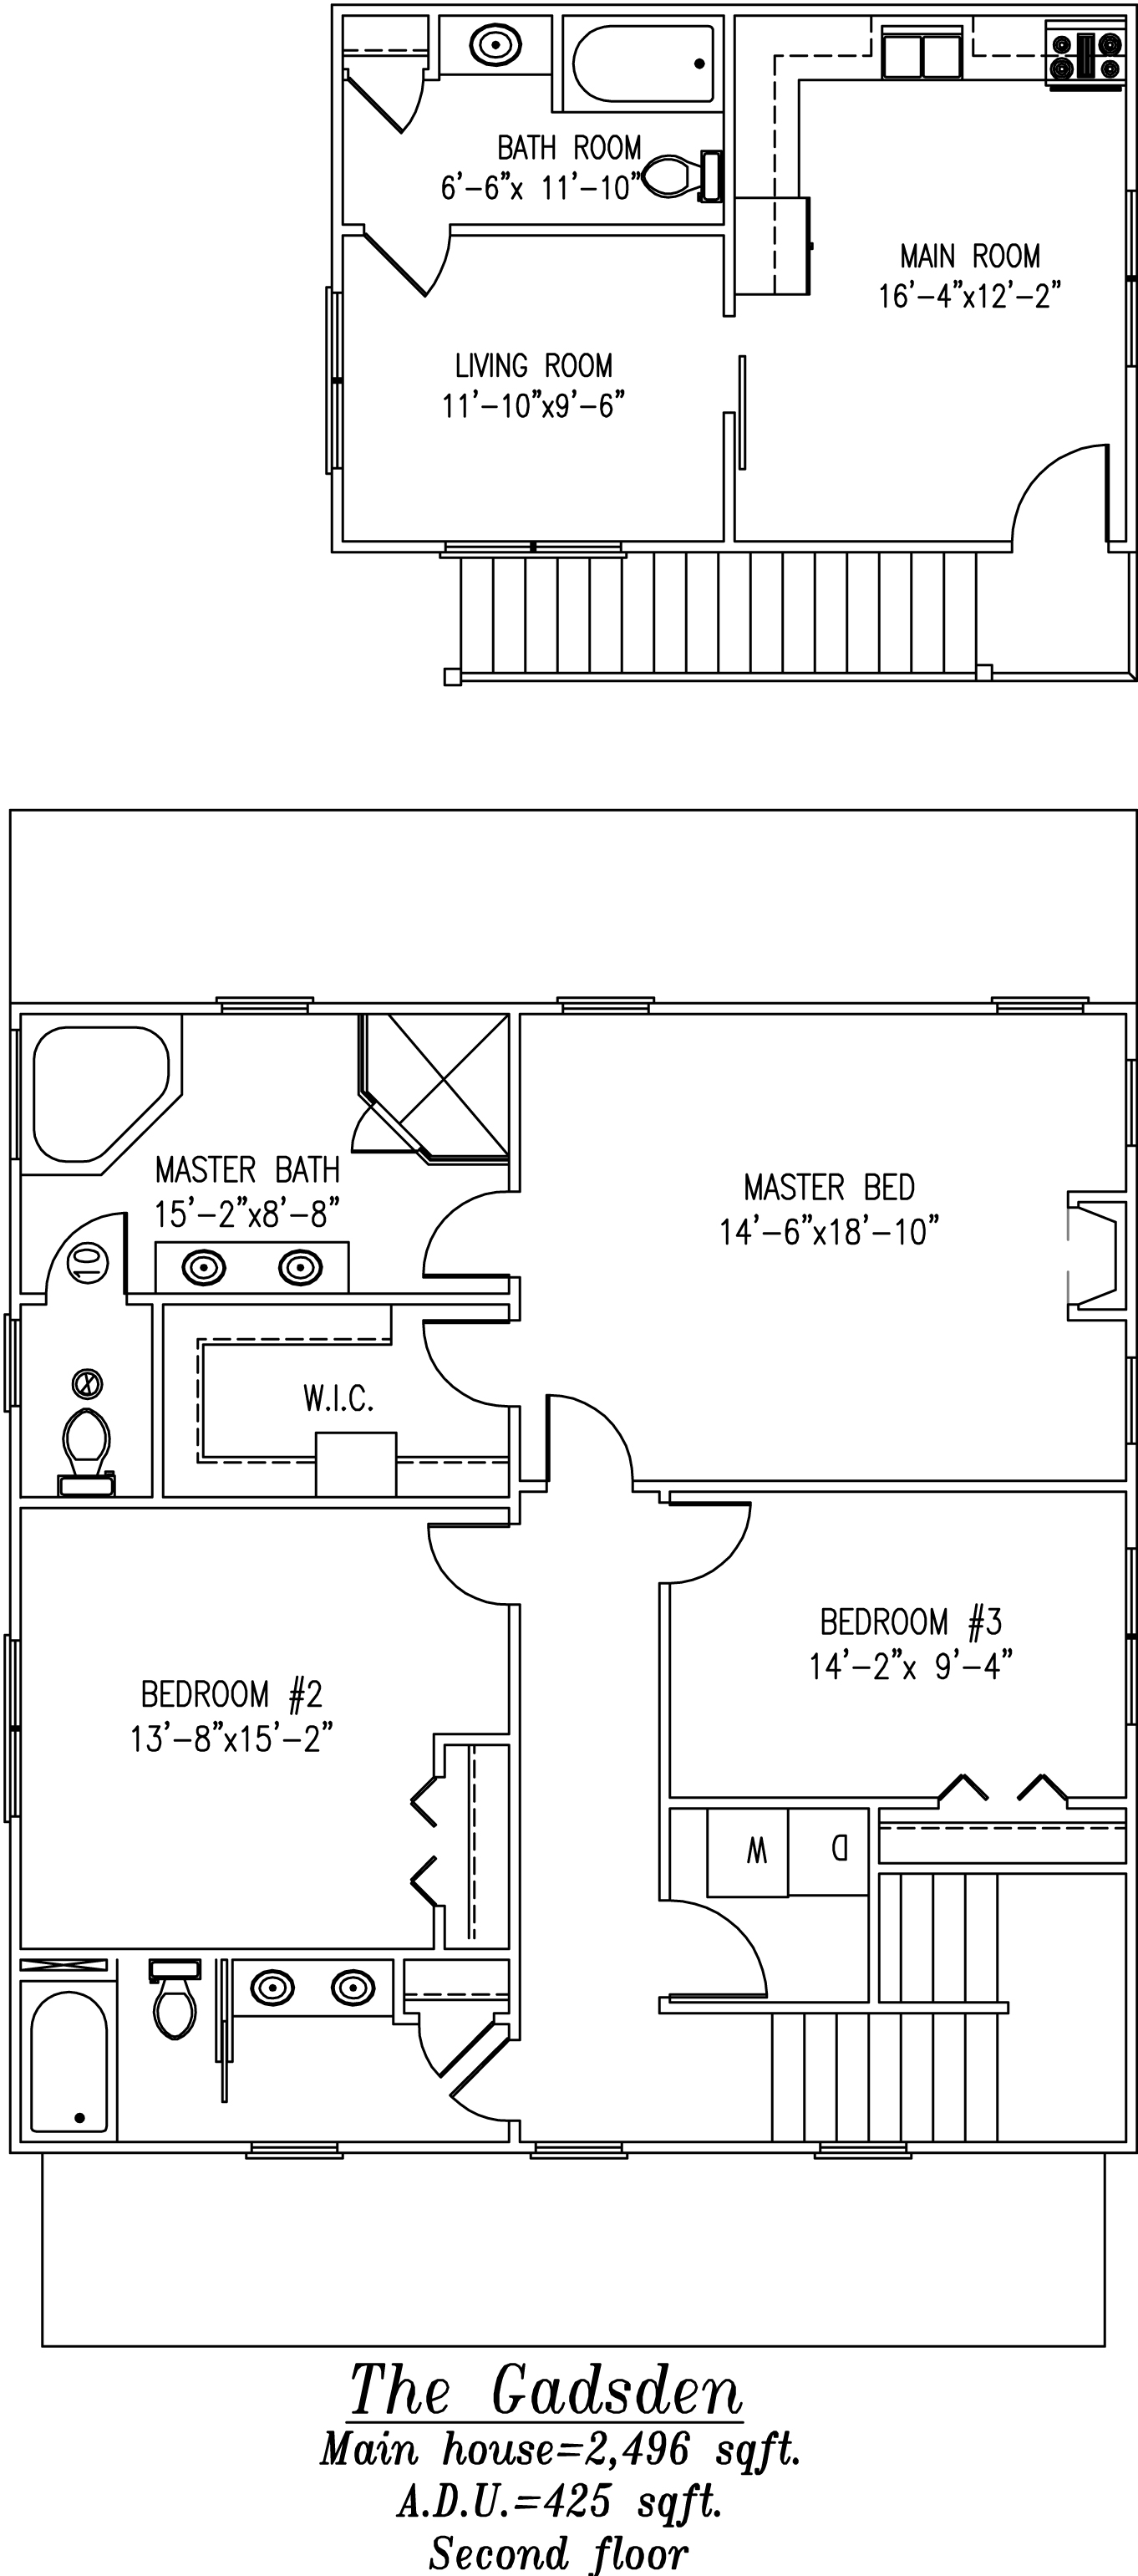 Gadsden Second Floor Plan